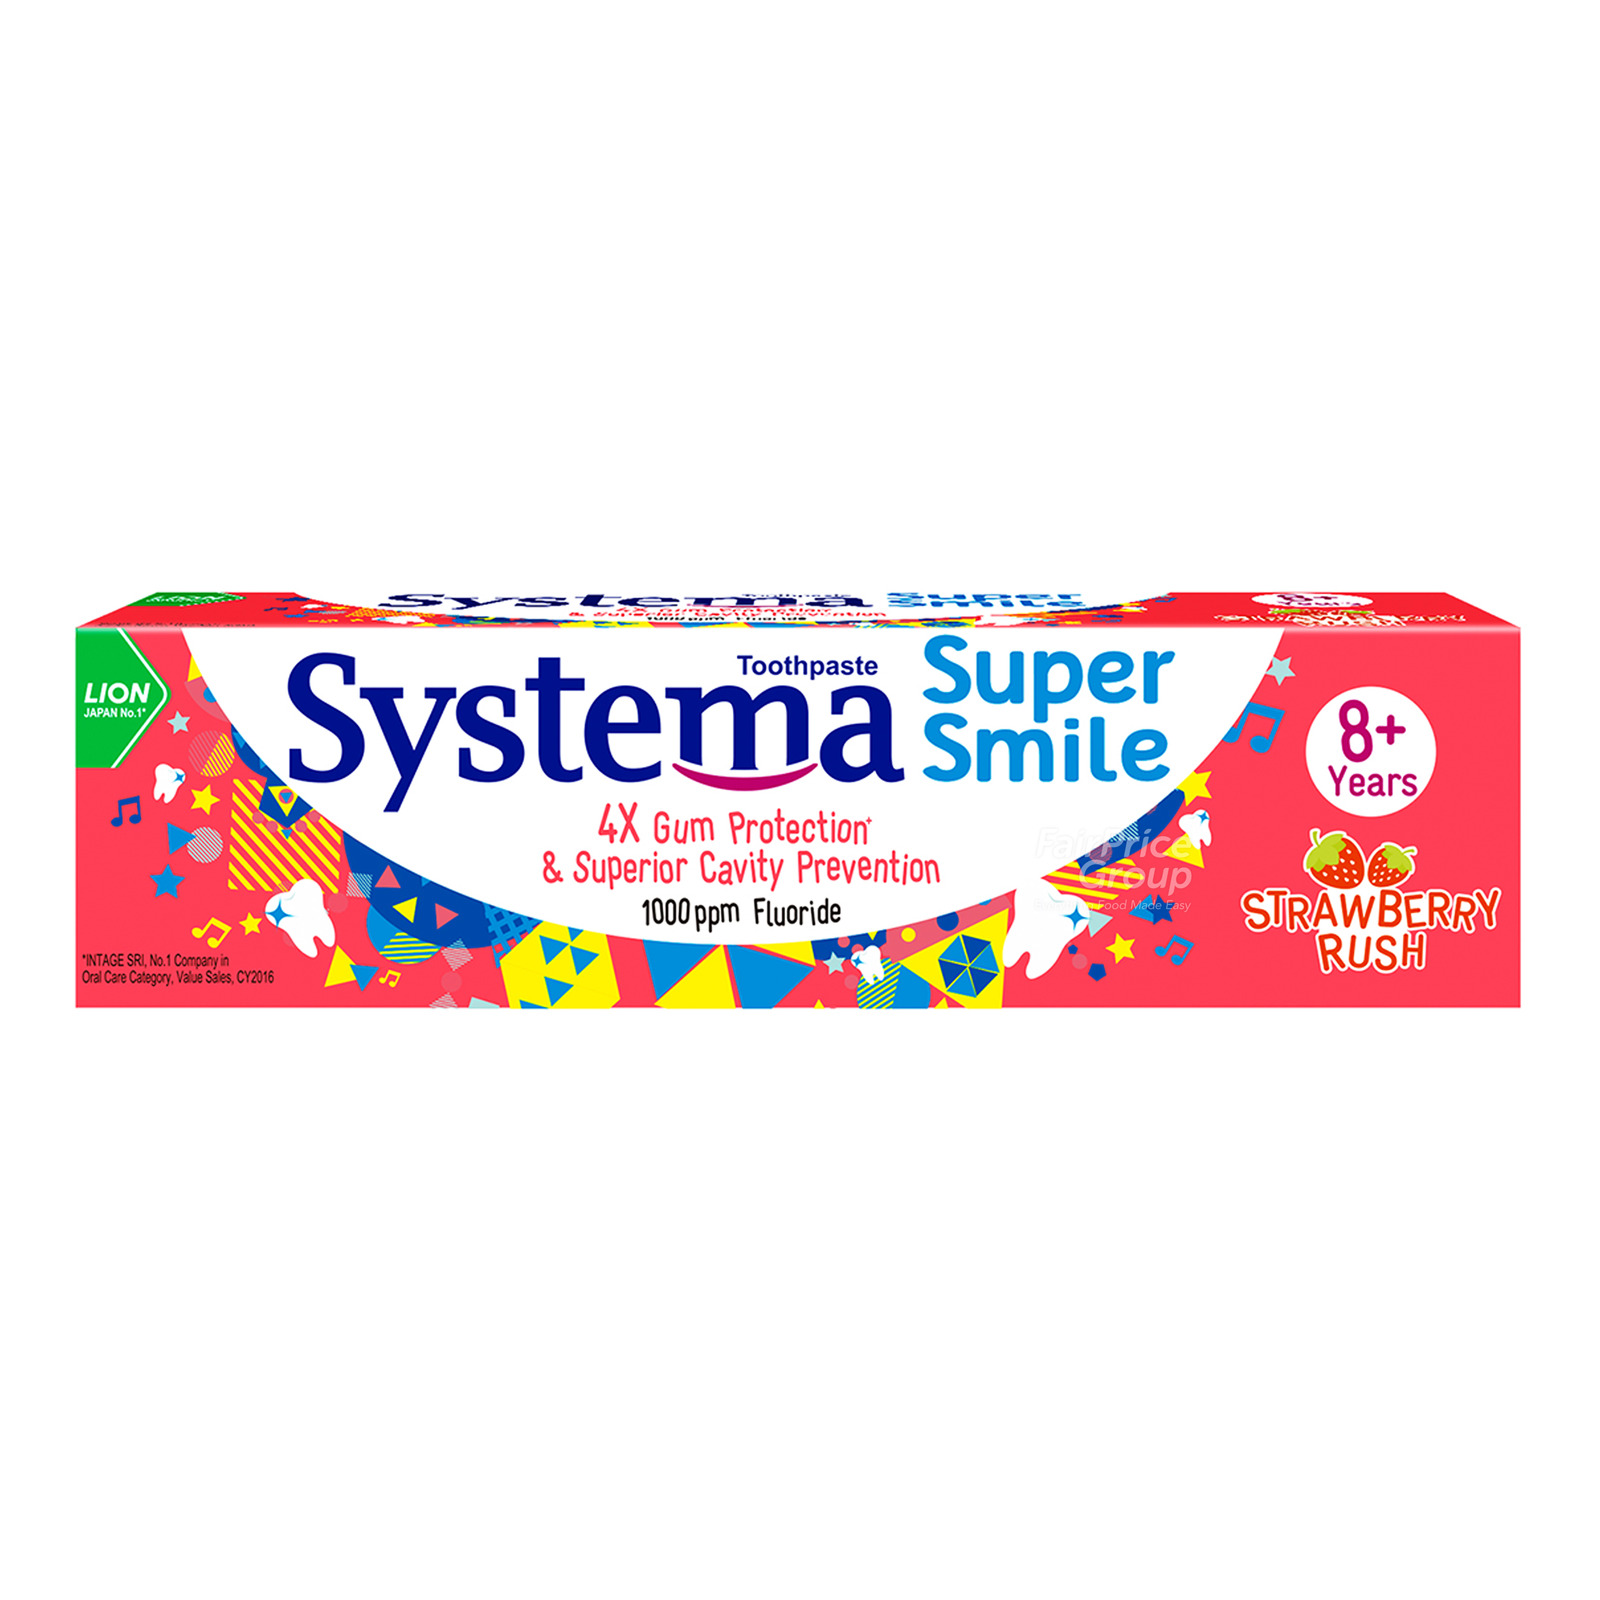 Systema Super Smile Toothpaste - Strawberry Rush (8+ years)